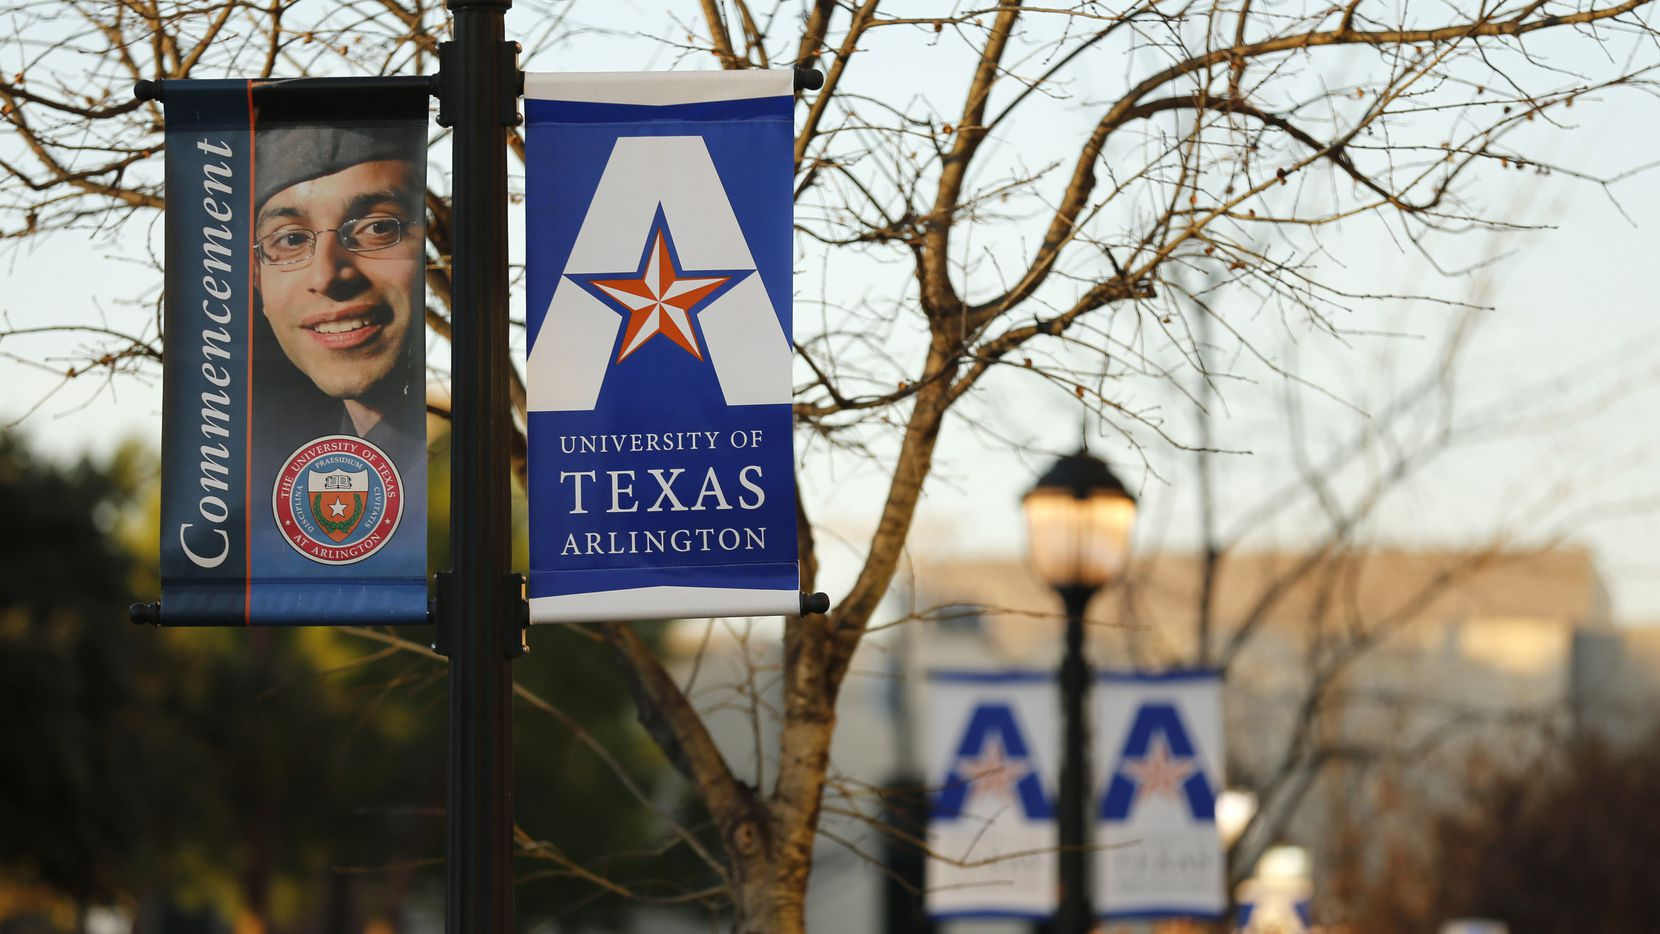 The Texas Faculty Association wants Gov. Abbott to delay in-person lessons for state-supported universities.